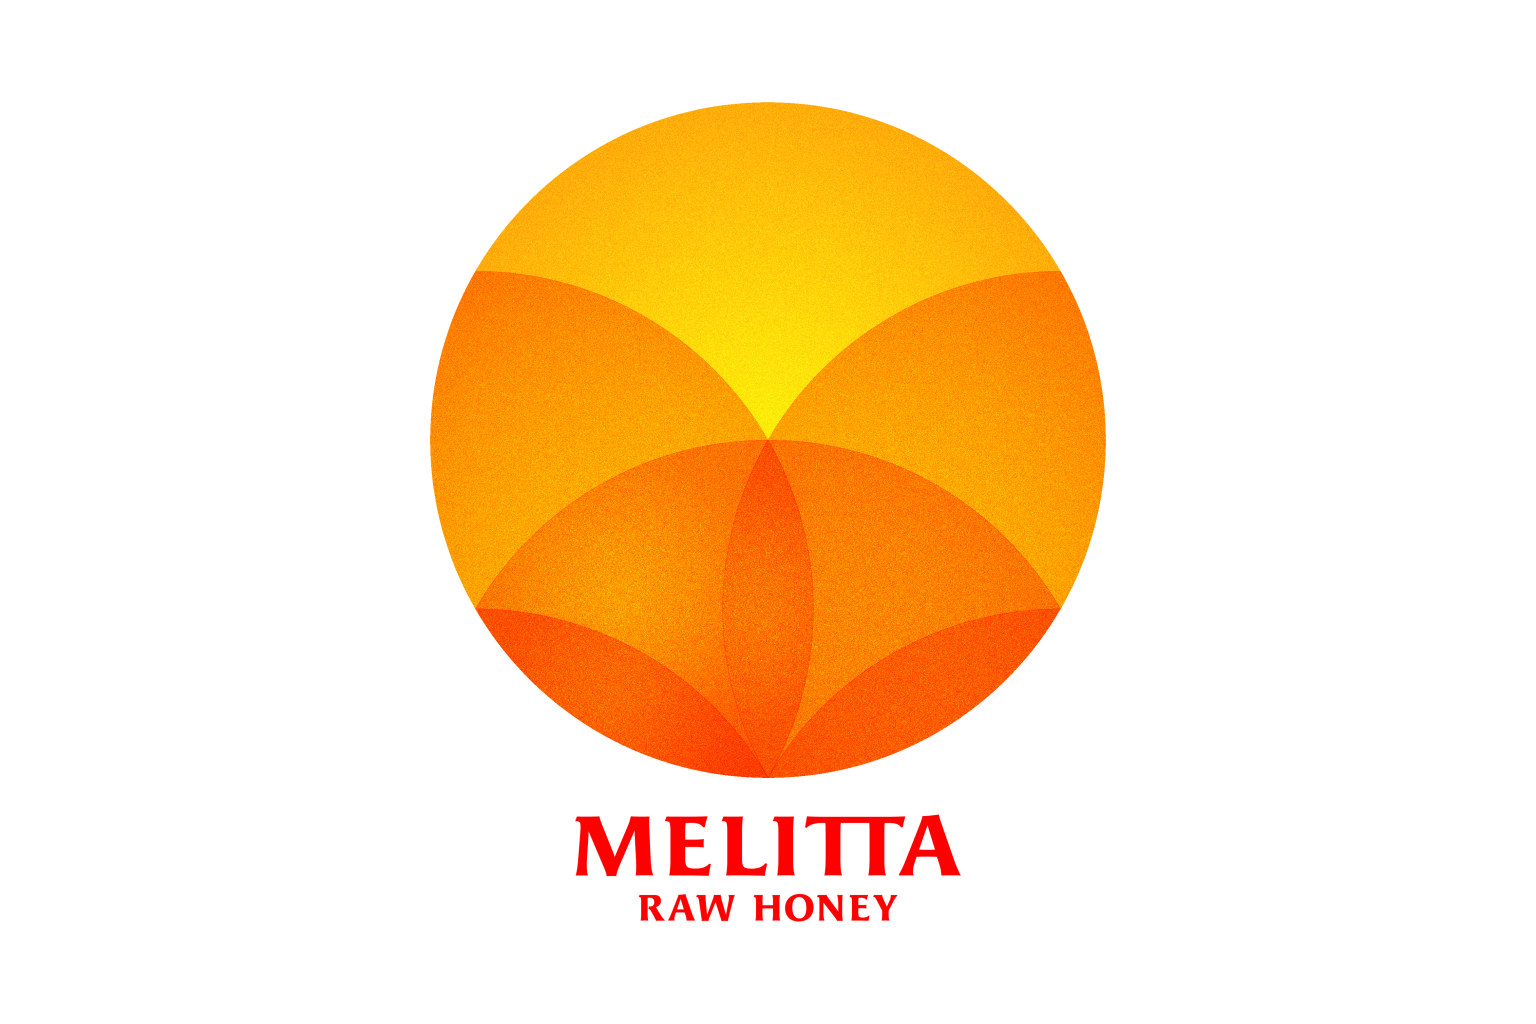 MELITTA HONEY